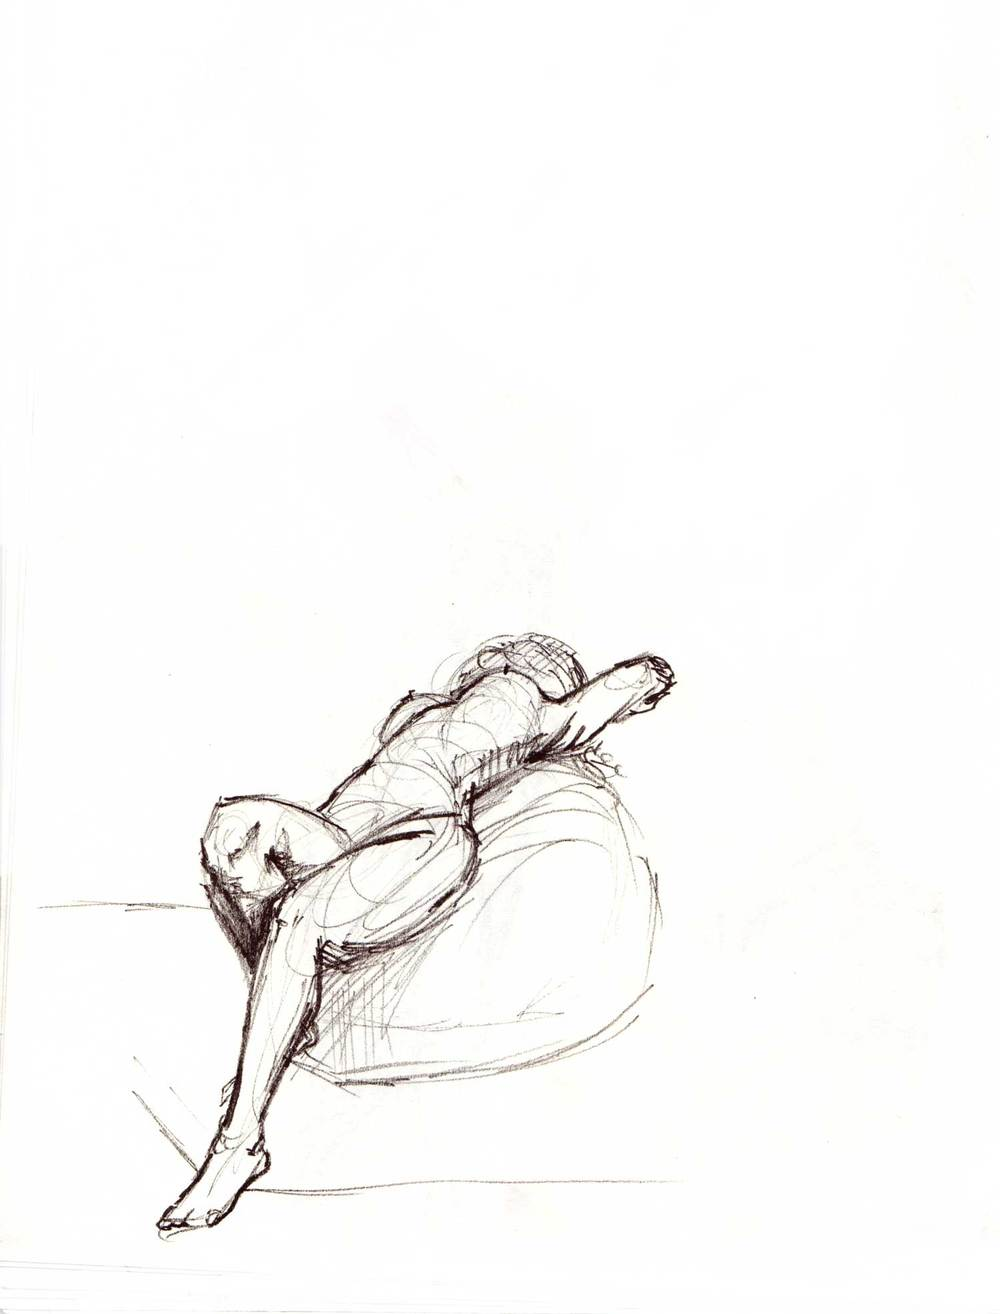 Sburtner_LifeDrawing.jpg